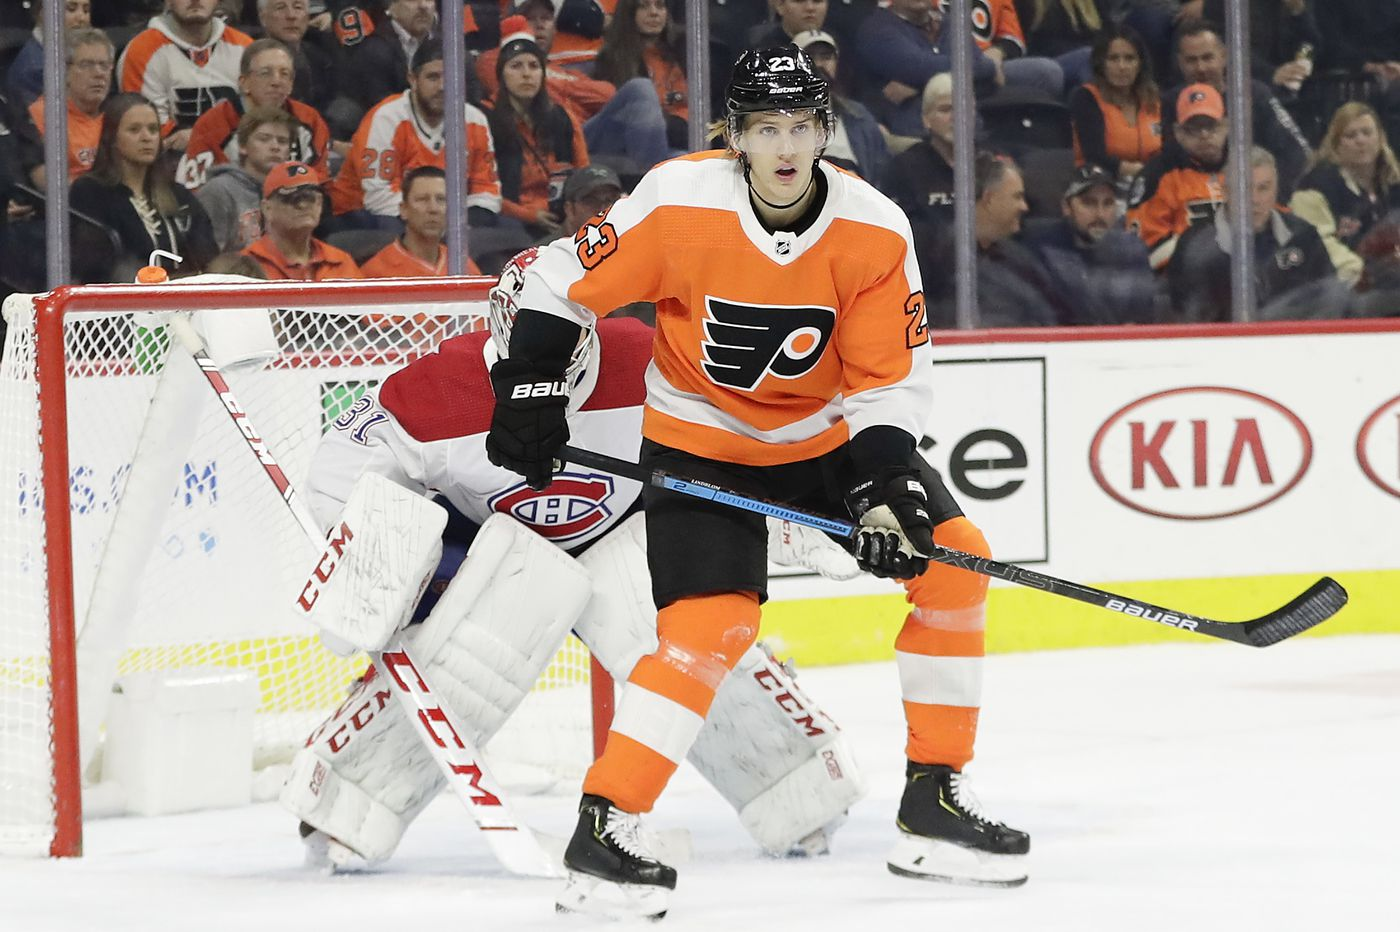 Oskar Lindblom skates with Flyers, says 'being around the boys is the best thing for me'